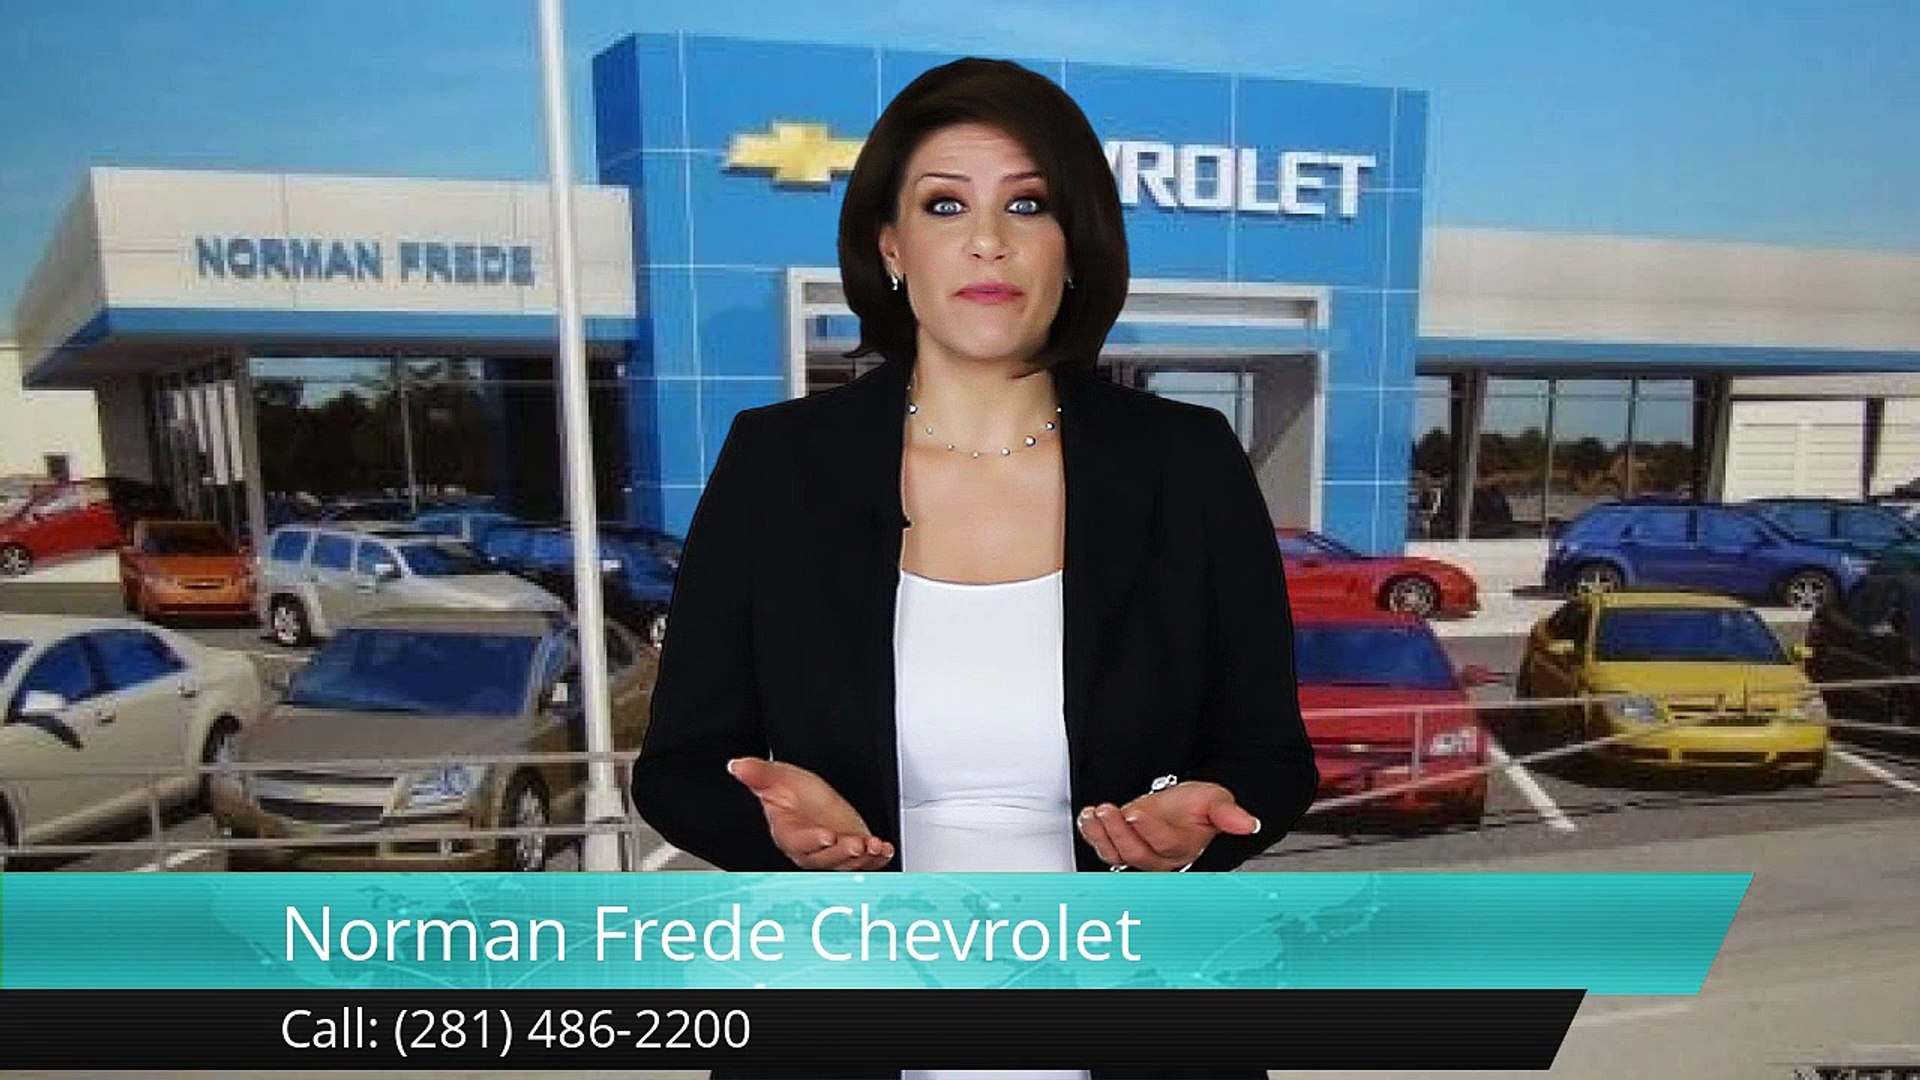 Norman Frede Chevrolet Houston Reviews By Erick C Video Dailymotion